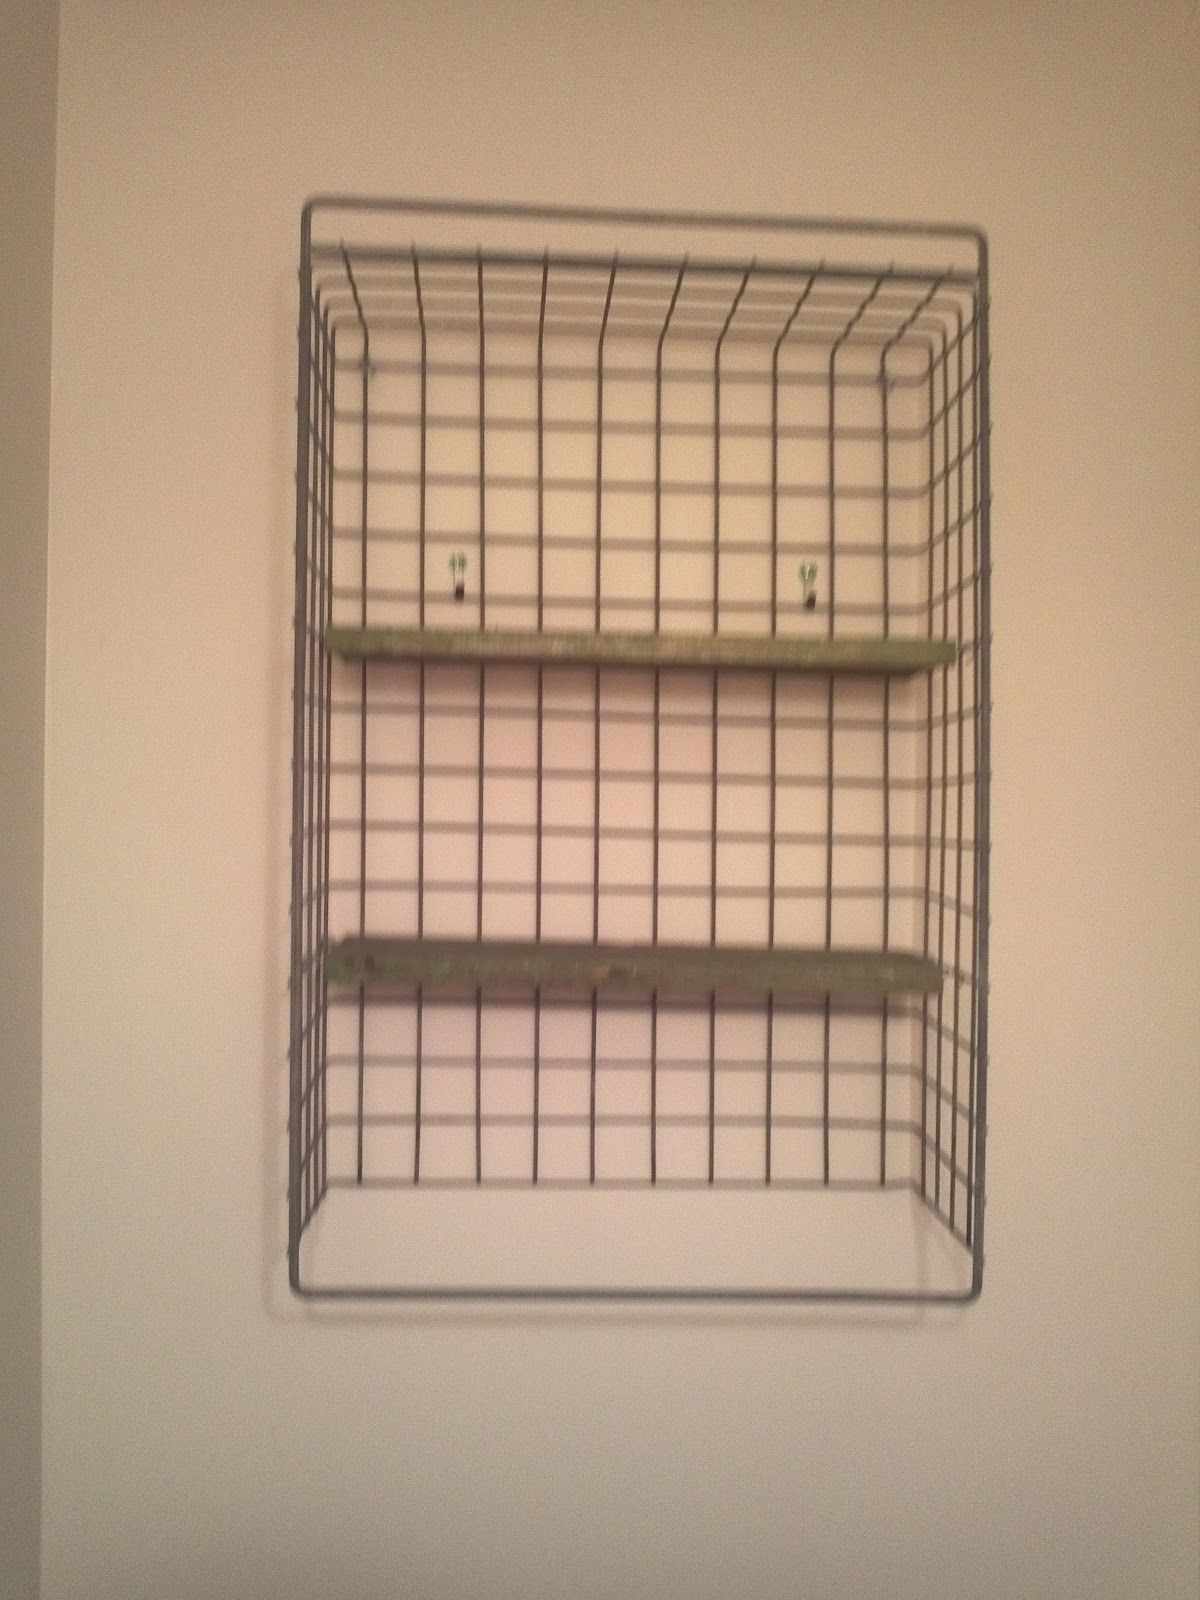 How To Hang Wire Basket On Wall Google Search Wire Wall Basket Wire Basket Shelves Baskets On Wall